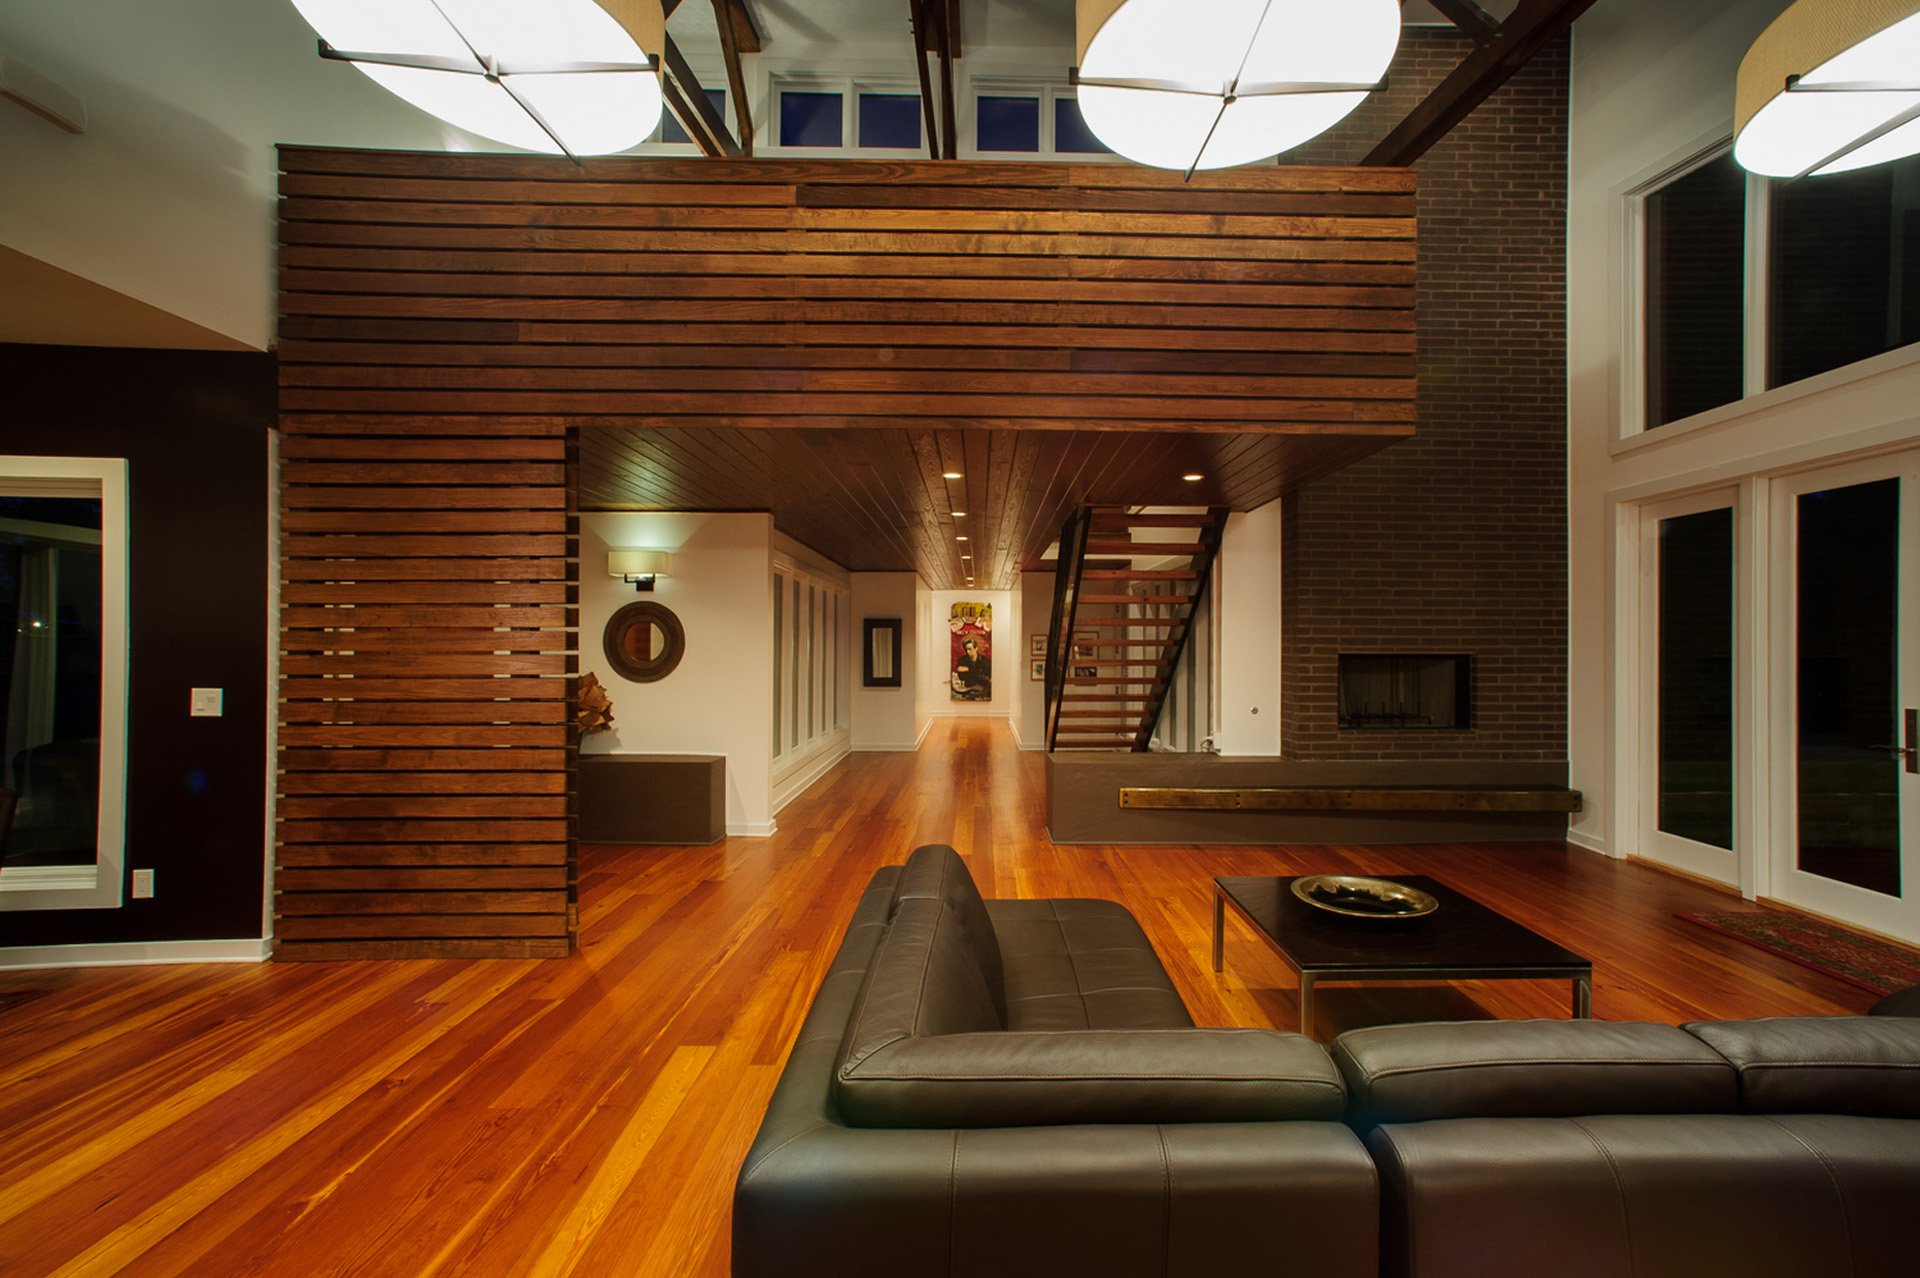 Reclaimed pine flooring with pine wall paneling